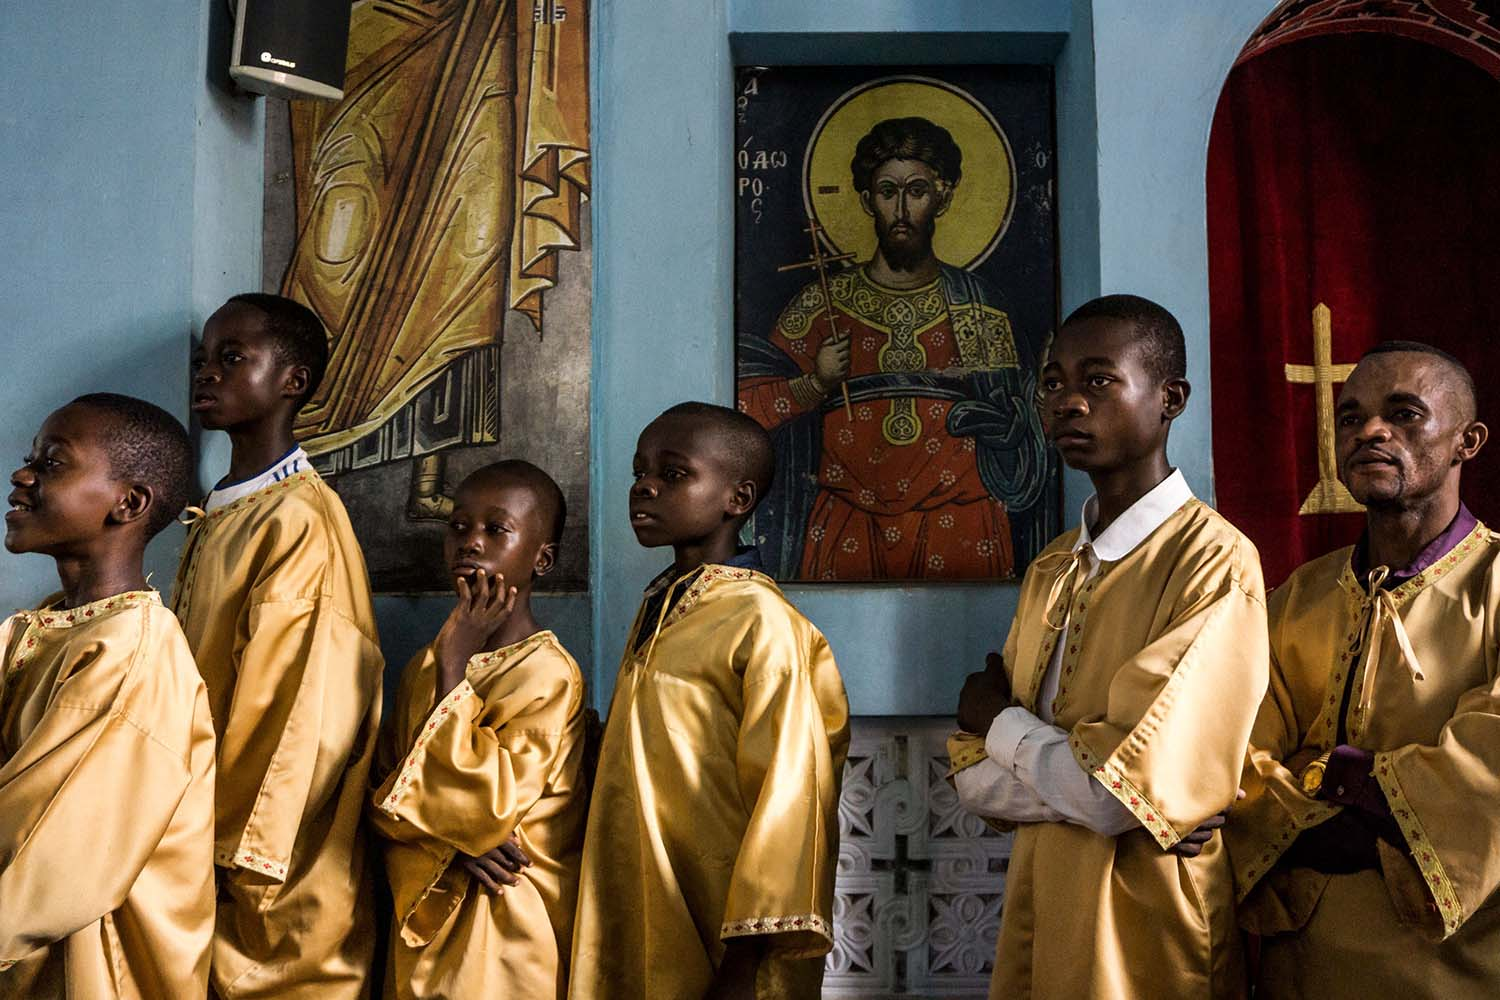 Congolese altar boys of the Greek Orthodox Church attend a Sunday Mass at the Saint Andrew Cathedral in Kananga on Nov. 10. JOHN WESSELS/AFP via Getty Images